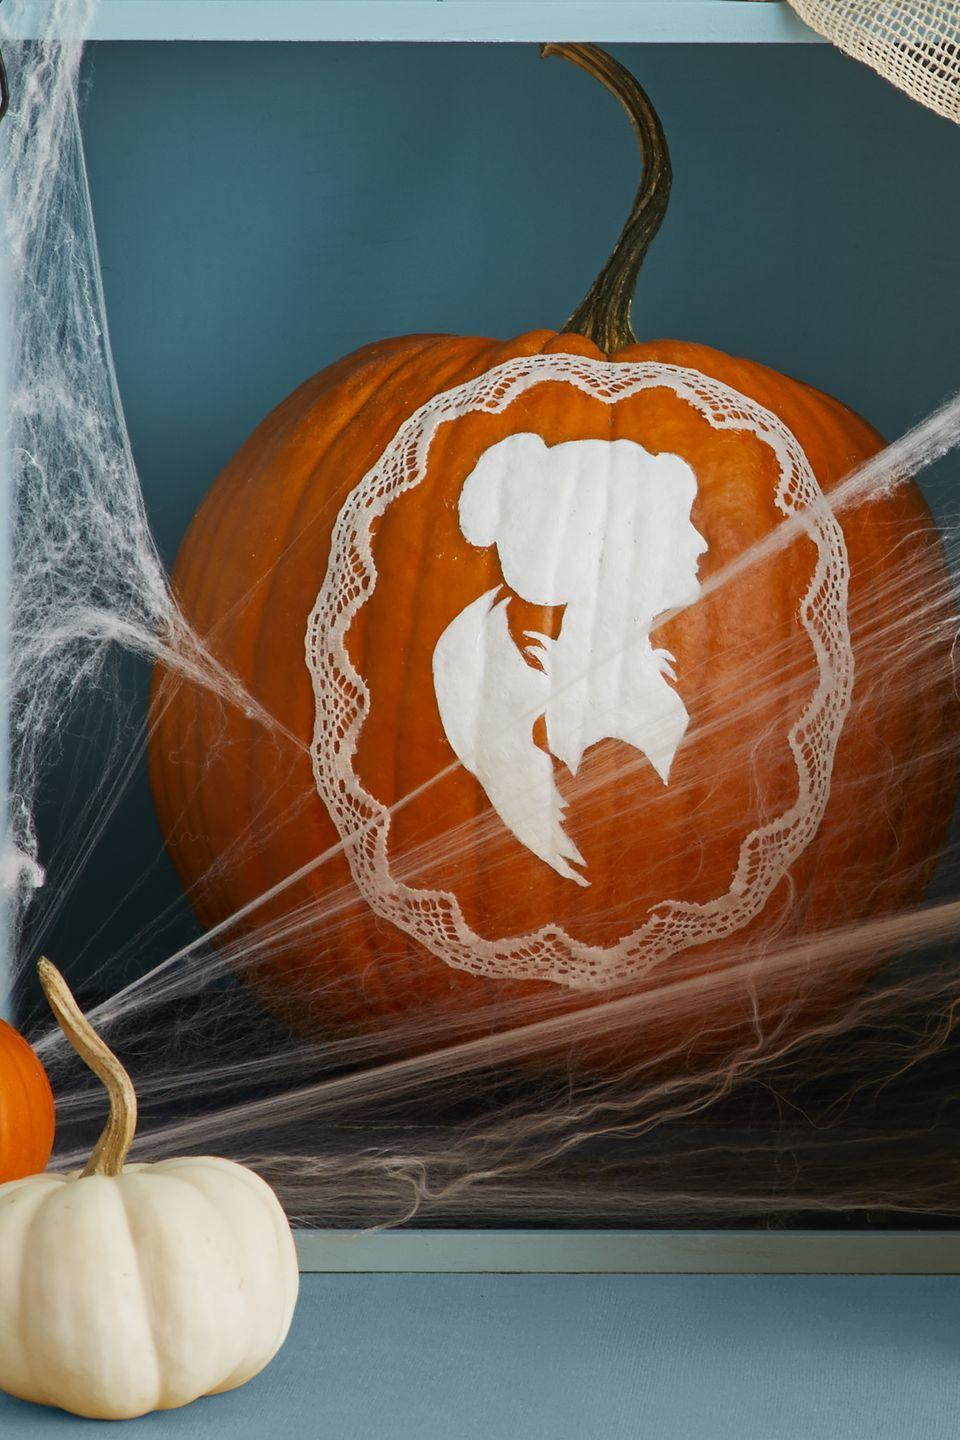 """<p>Print out a silhouette on regular paper, cut it out, paint it whatever color you'd like, then attach it to the pumpkin with glue or double-sided tape. To add an extra touch, grab any lace you have laying around the house and use it as a frame around the silhouette cut-out<a href=""""https://hmg-prod.s3.amazonaws.com/files/pumpkin-cameo-f-1627665153.pdf?tag=syn-yahoo-20&ascsubtag=%5Bartid%7C10070.g.331%5Bsrc%7Cyahoo-us"""" rel=""""nofollow noopener"""" target=""""_blank"""" data-ylk=""""slk:"""" class=""""link rapid-noclick-resp""""><br></a></p><p><a href=""""https://hmg-prod.s3.amazonaws.com/files/pumpkin-cameo-f-1627665153.pdf?tag=syn-yahoo-20&ascsubtag=%5Bartid%7C10070.g.331%5Bsrc%7Cyahoo-us"""" rel=""""nofollow noopener"""" target=""""_blank"""" data-ylk=""""slk:Get the free Silhouette Pumpkin stencil."""" class=""""link rapid-noclick-resp""""><strong><em>Get the free Silhouette Pumpkin stencil.</em></strong></a></p>"""